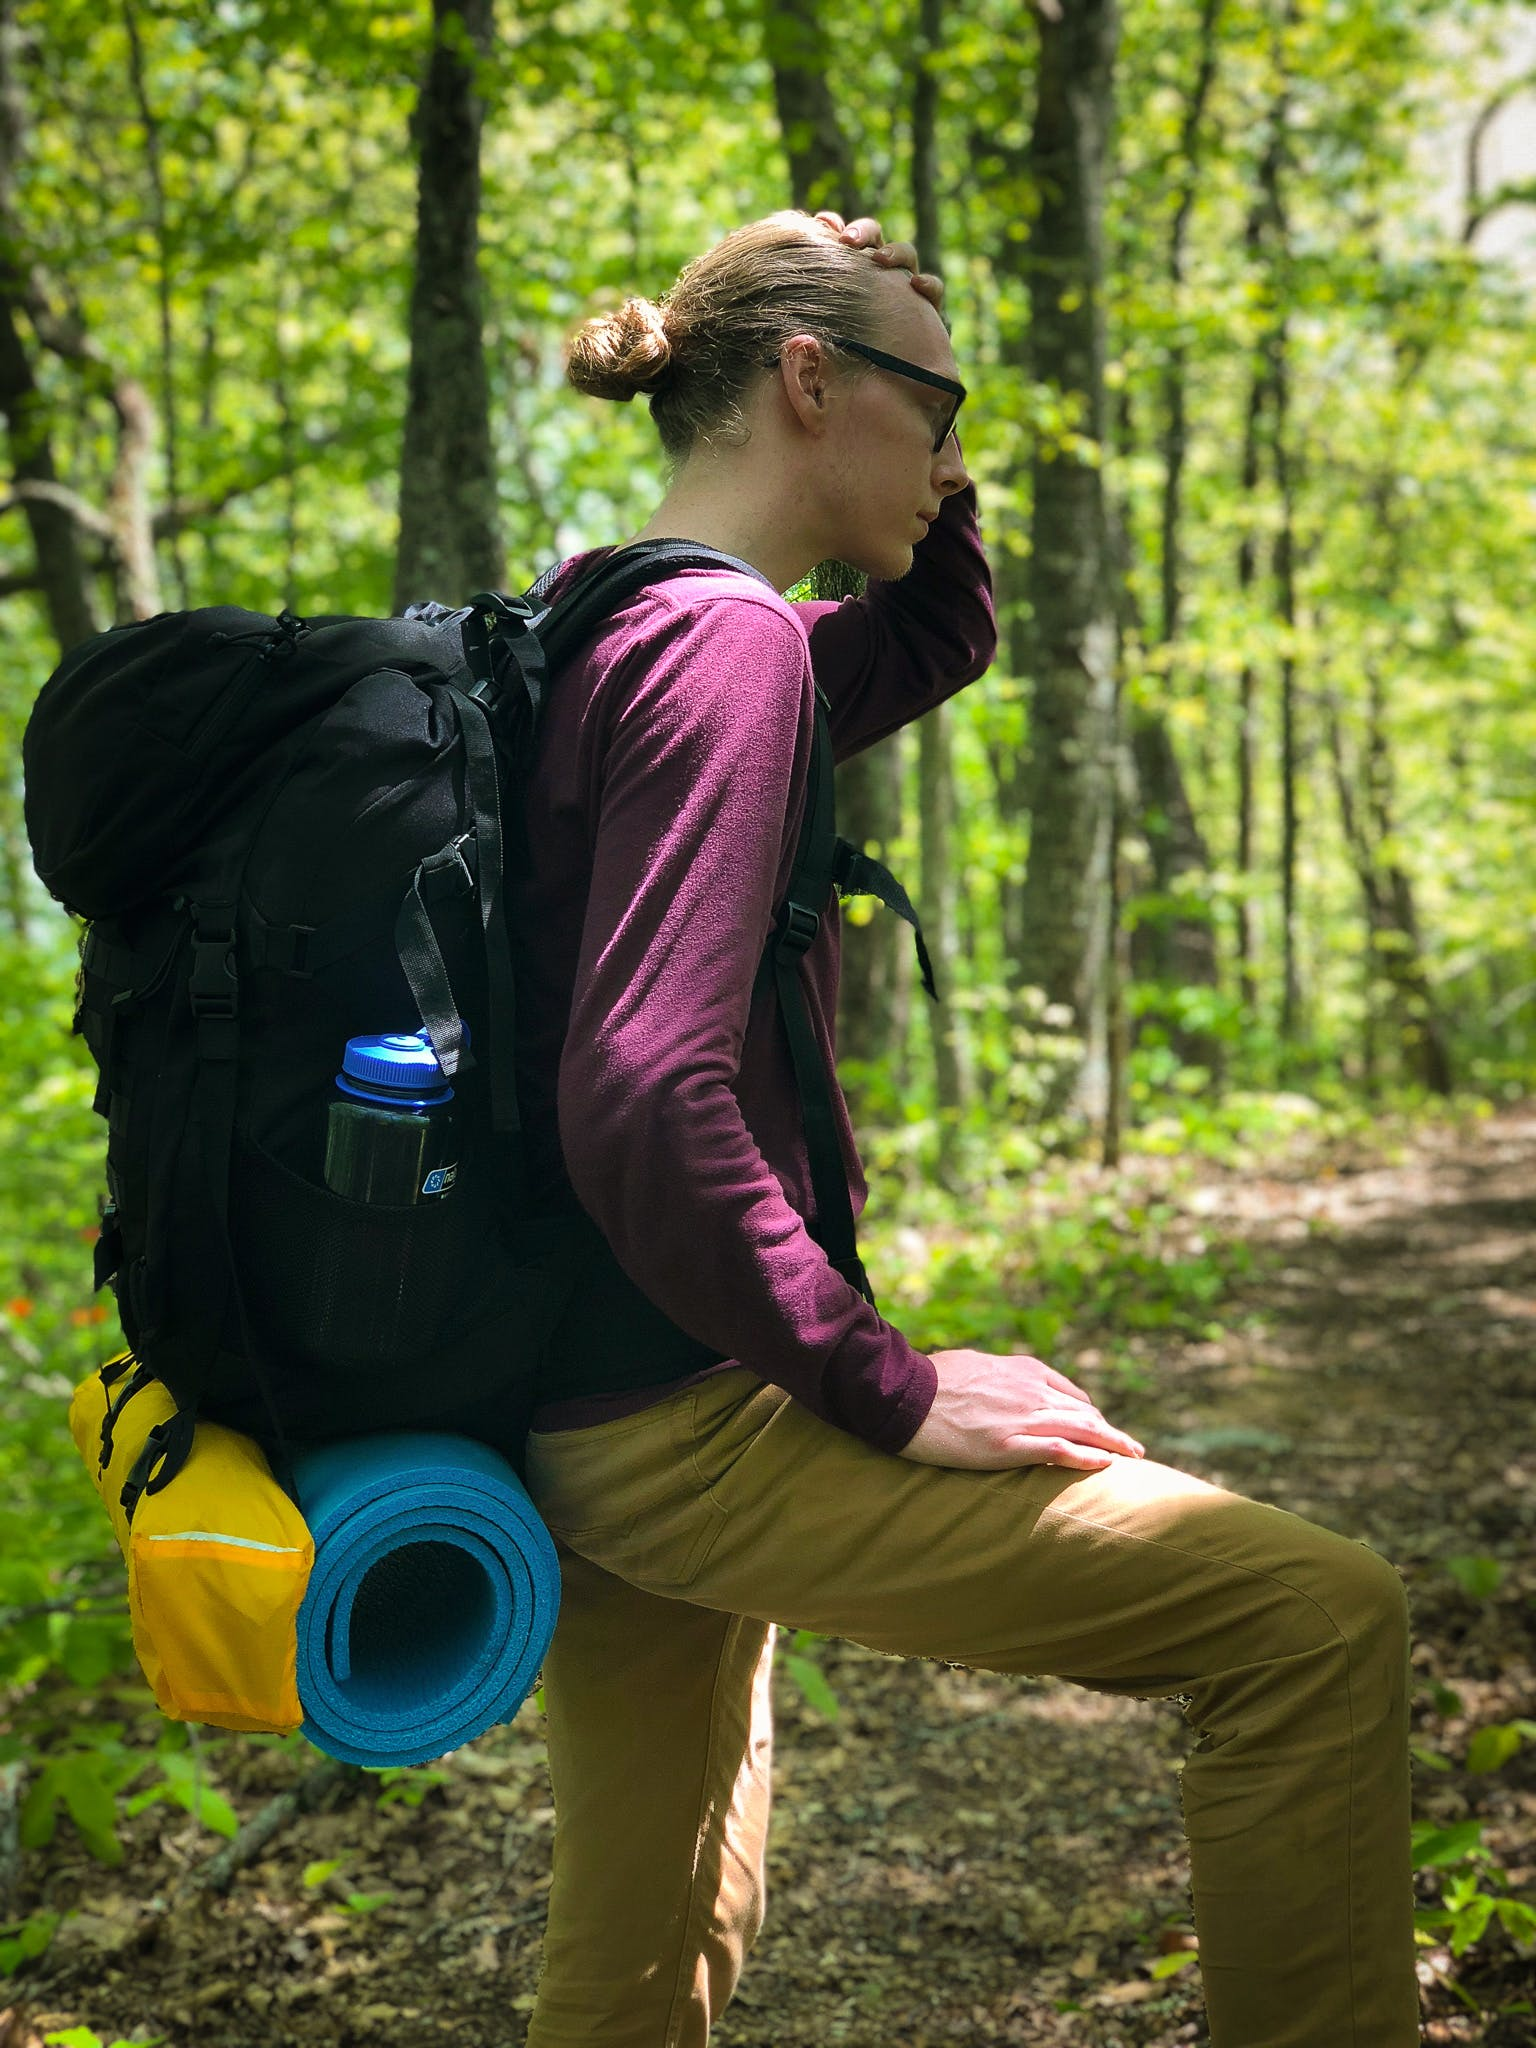 Free stock photo of backpacker, cherokee national forest, hiker, trail